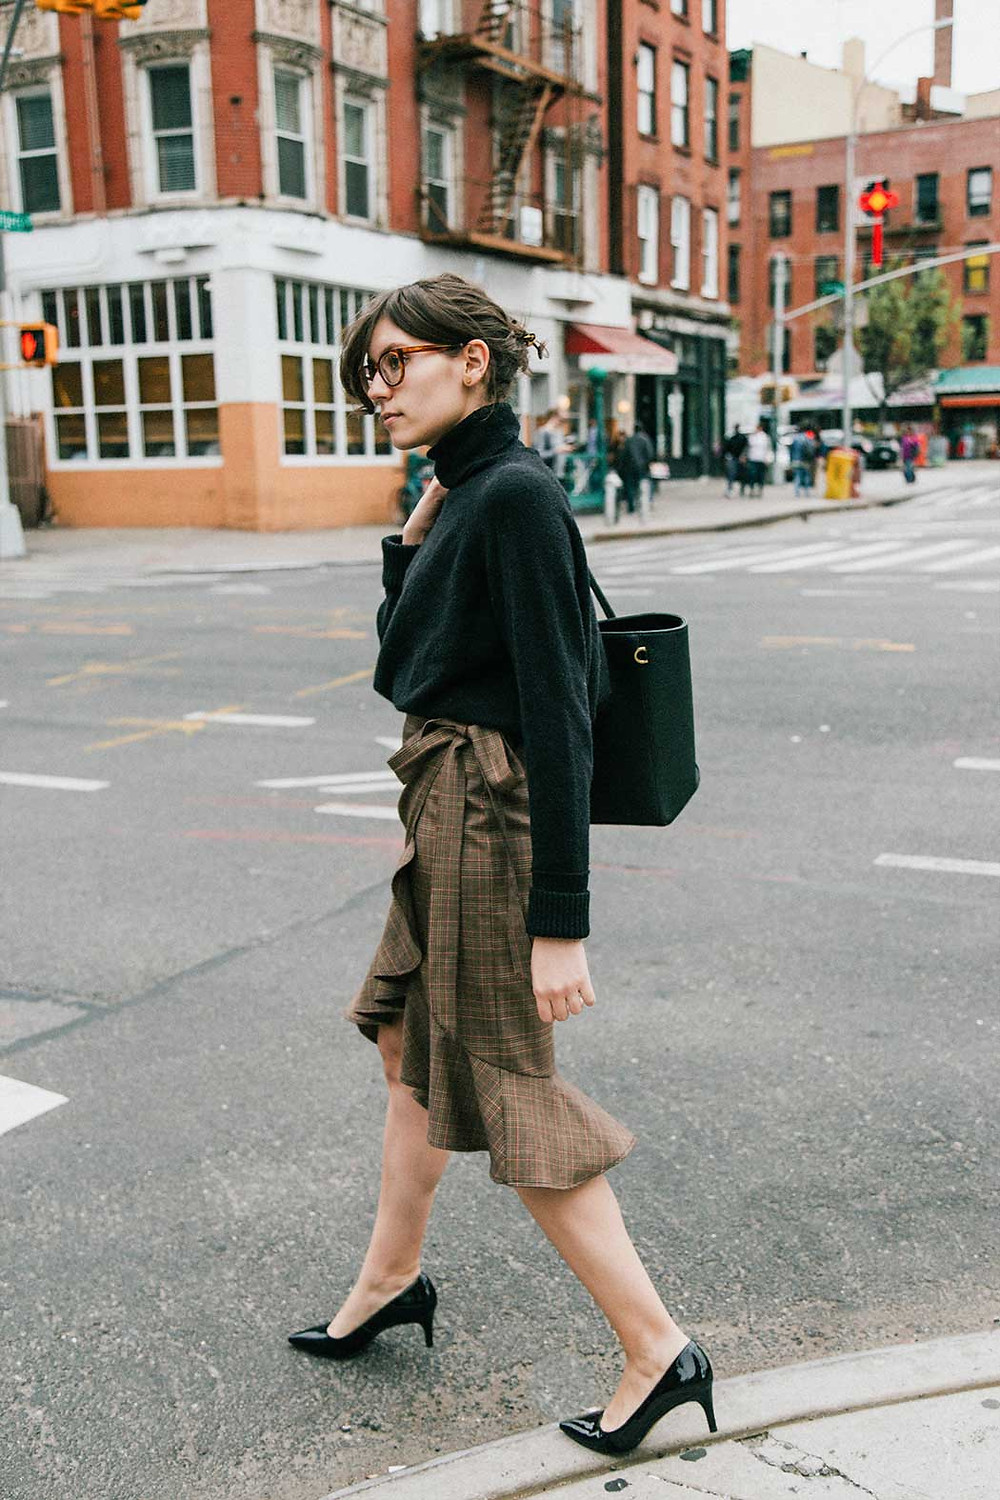 j.jackman ethical work clothes outfit inspiration wrap skirt